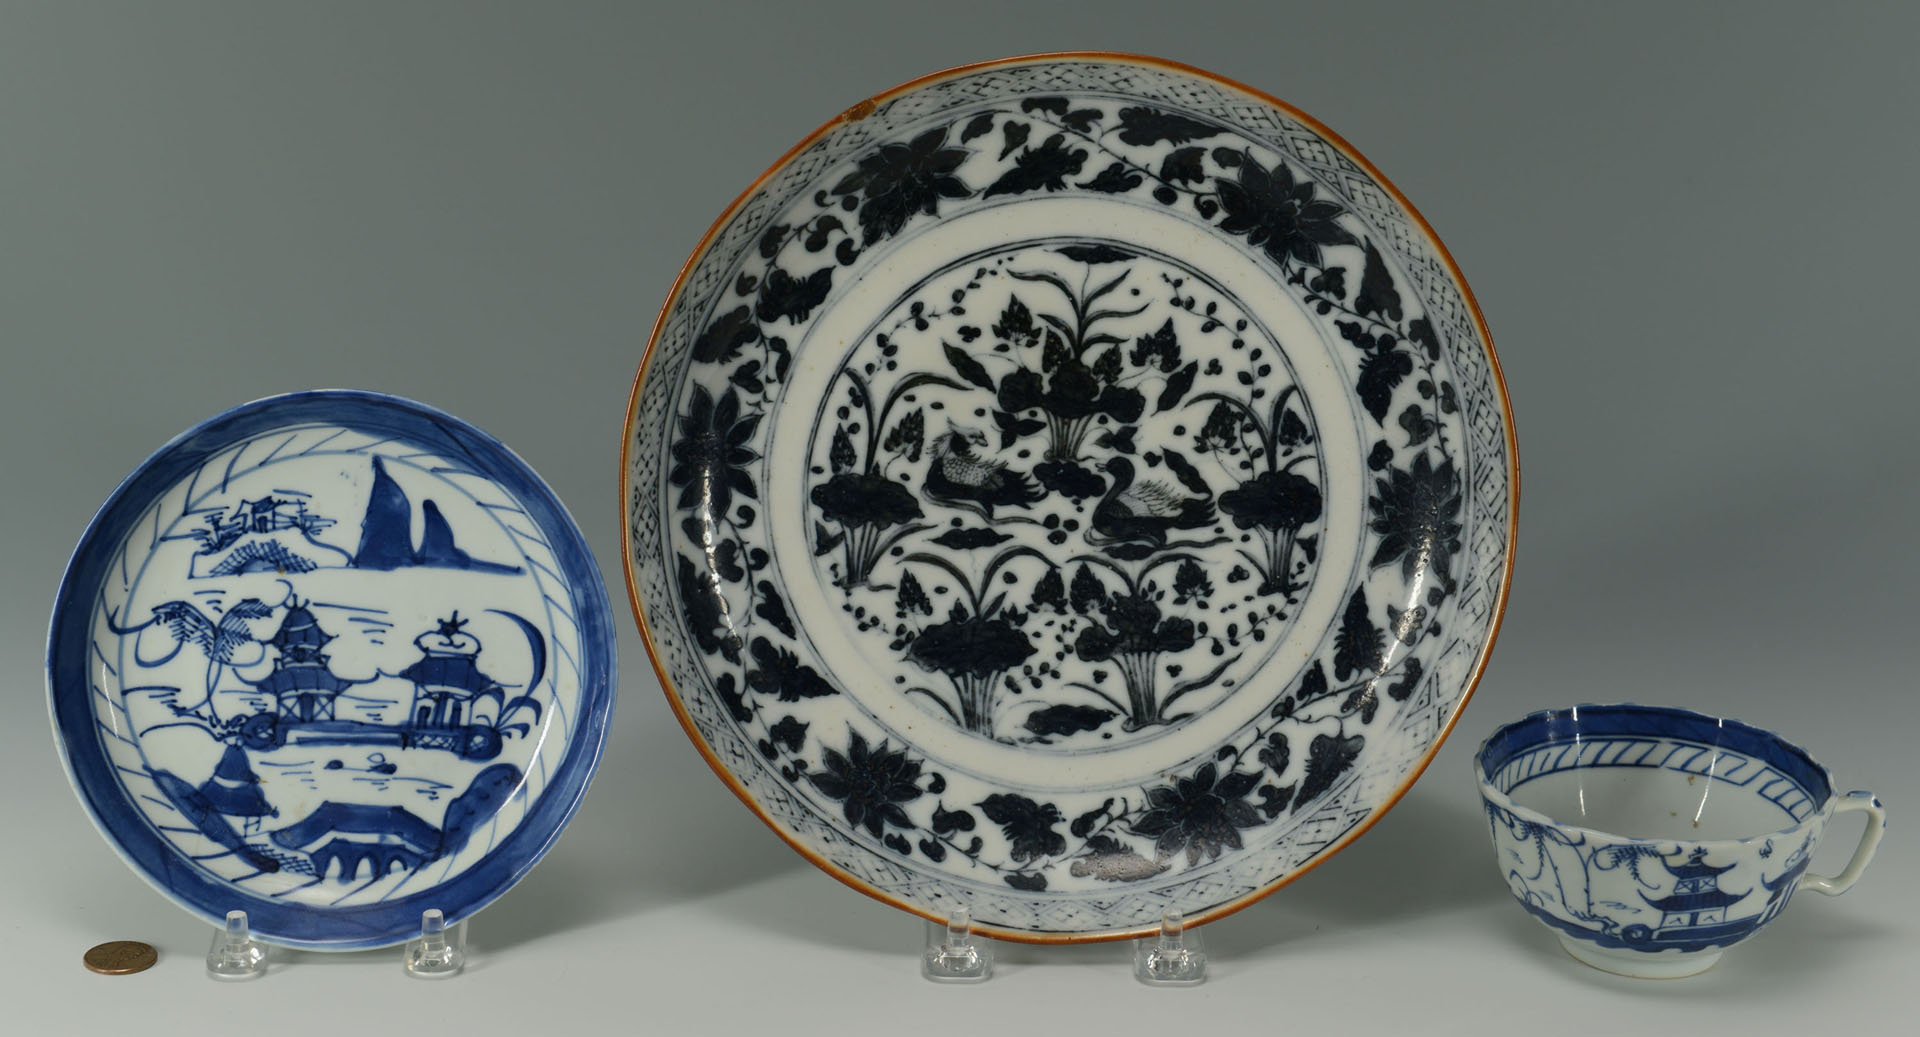 Grouping of 3 Chinese Porcelain Items